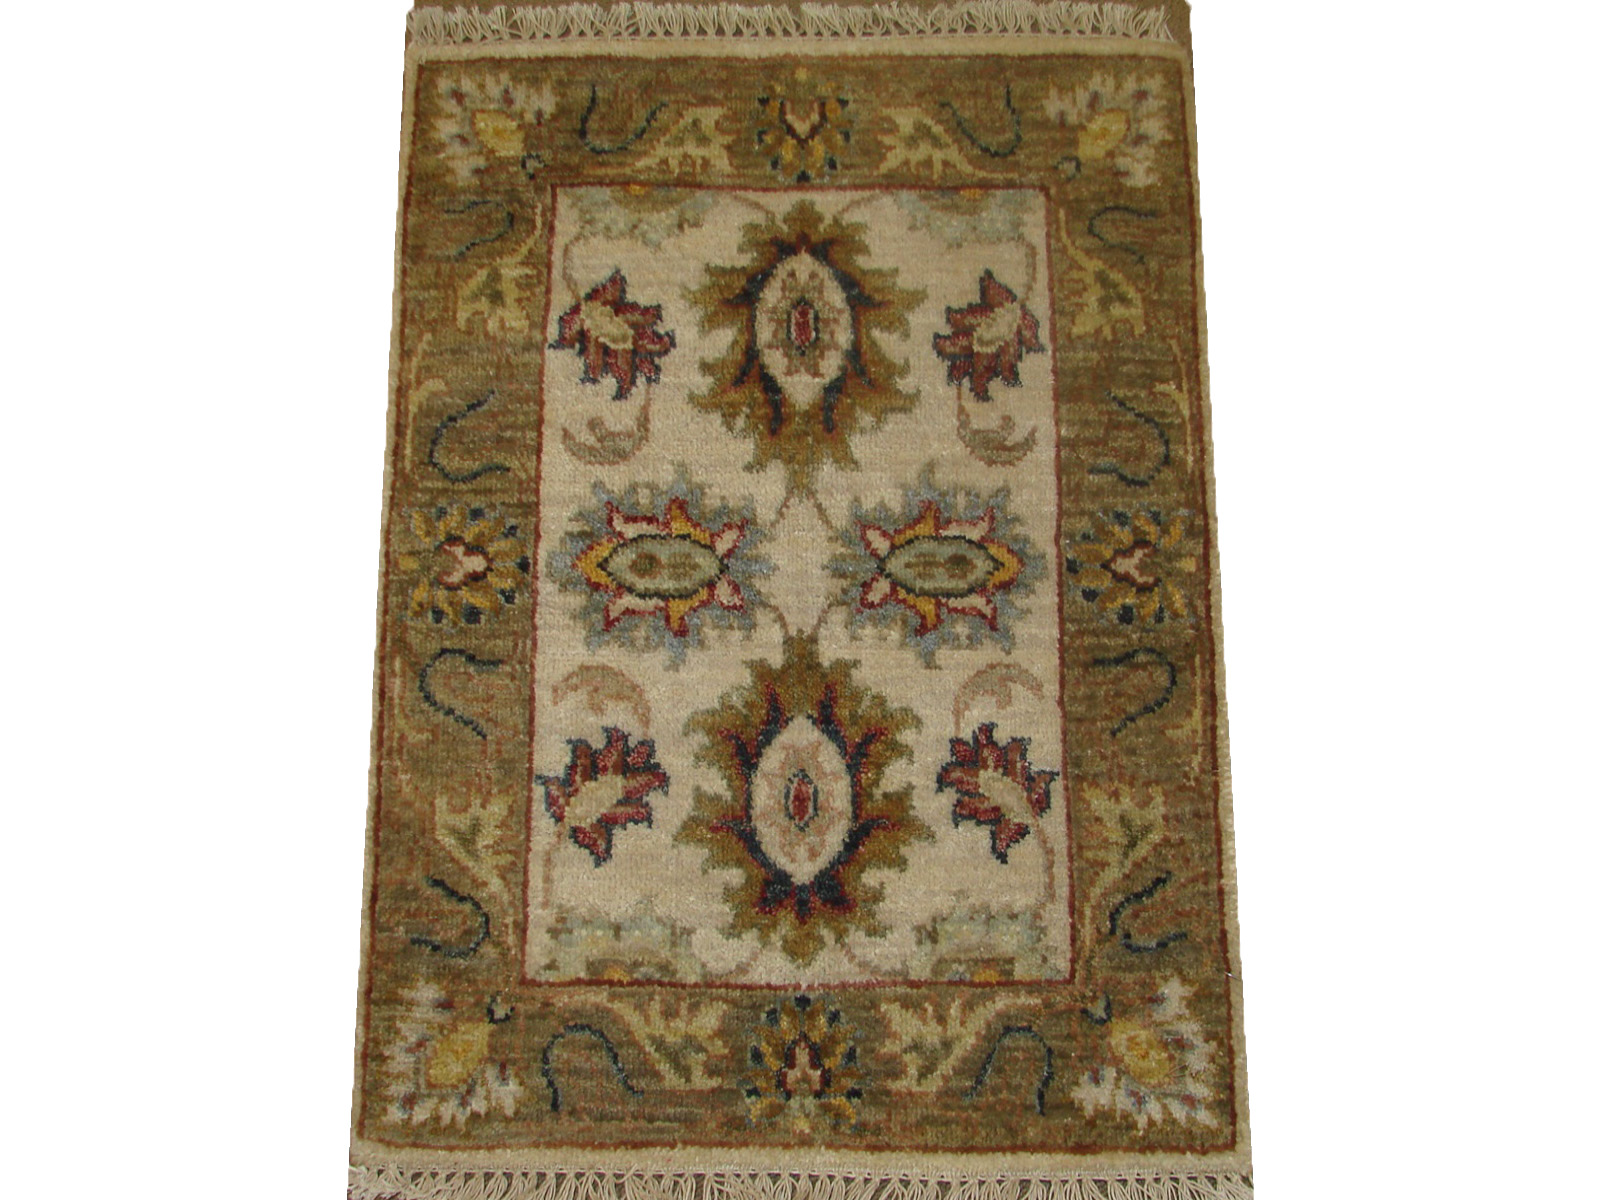 1.6X2 & SMALLER Traditional Hand Knotted Wool Area Rug - MR21102